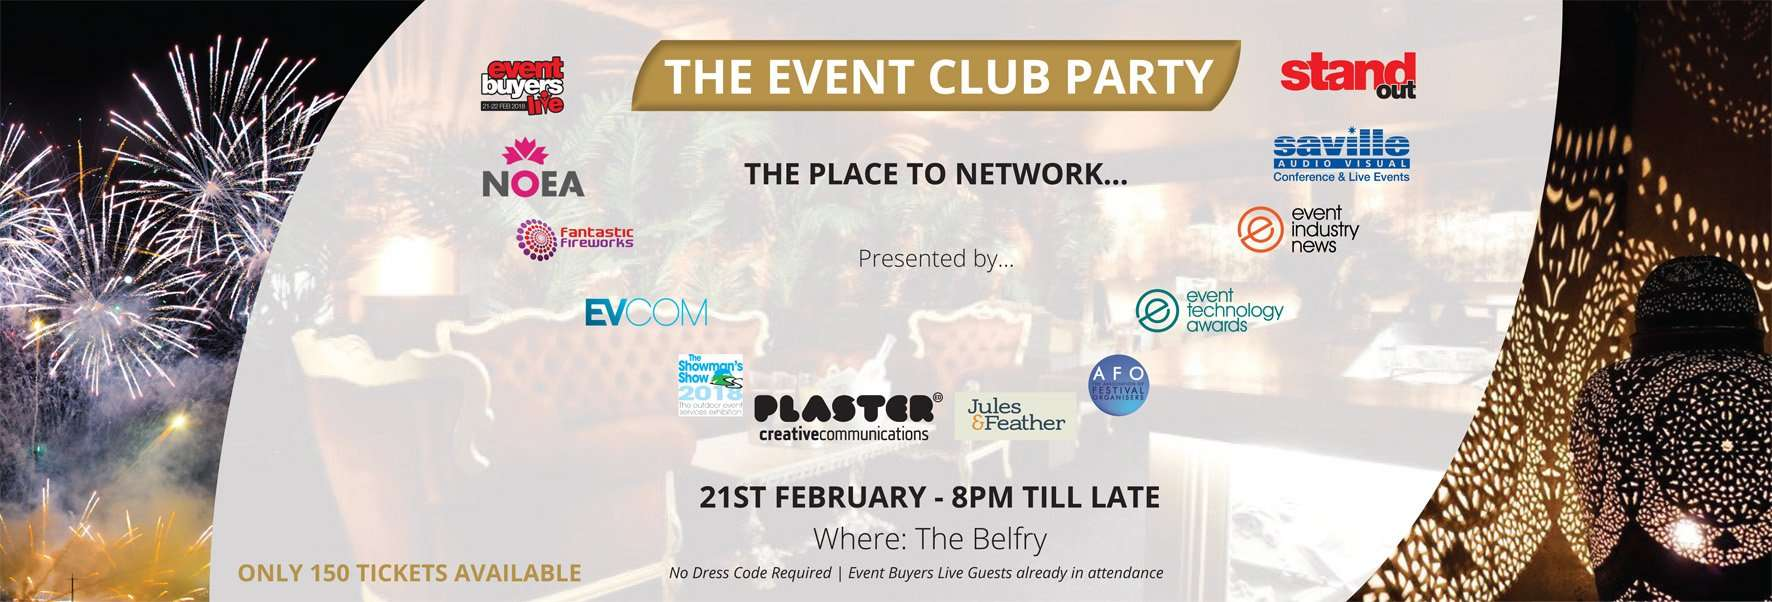 The Event Club Party